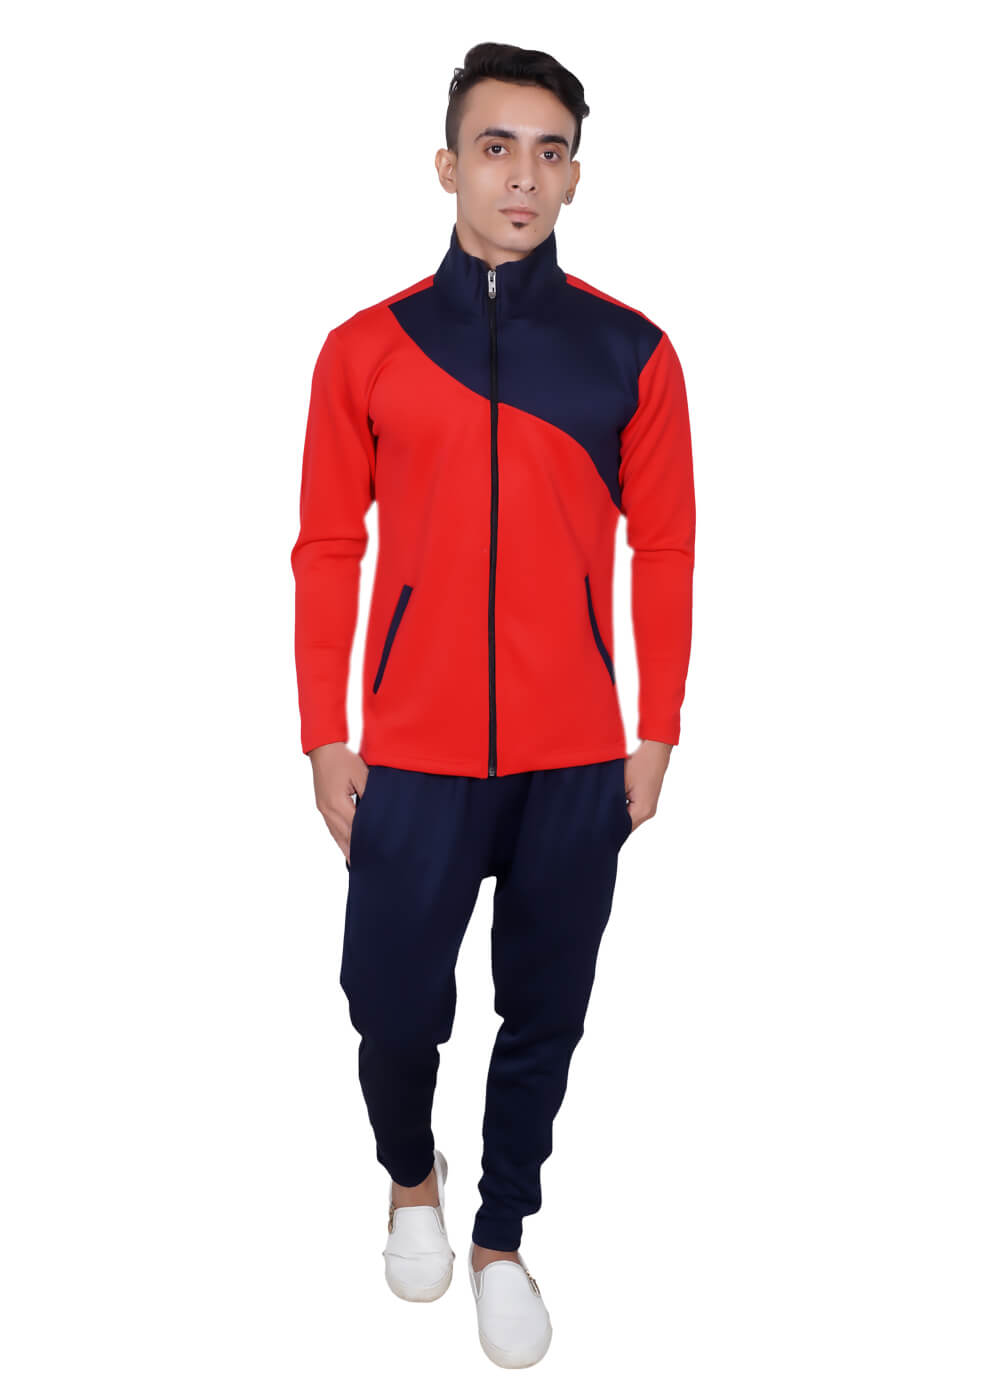 Cheap Tracksuits Manufacturers in Ranchi